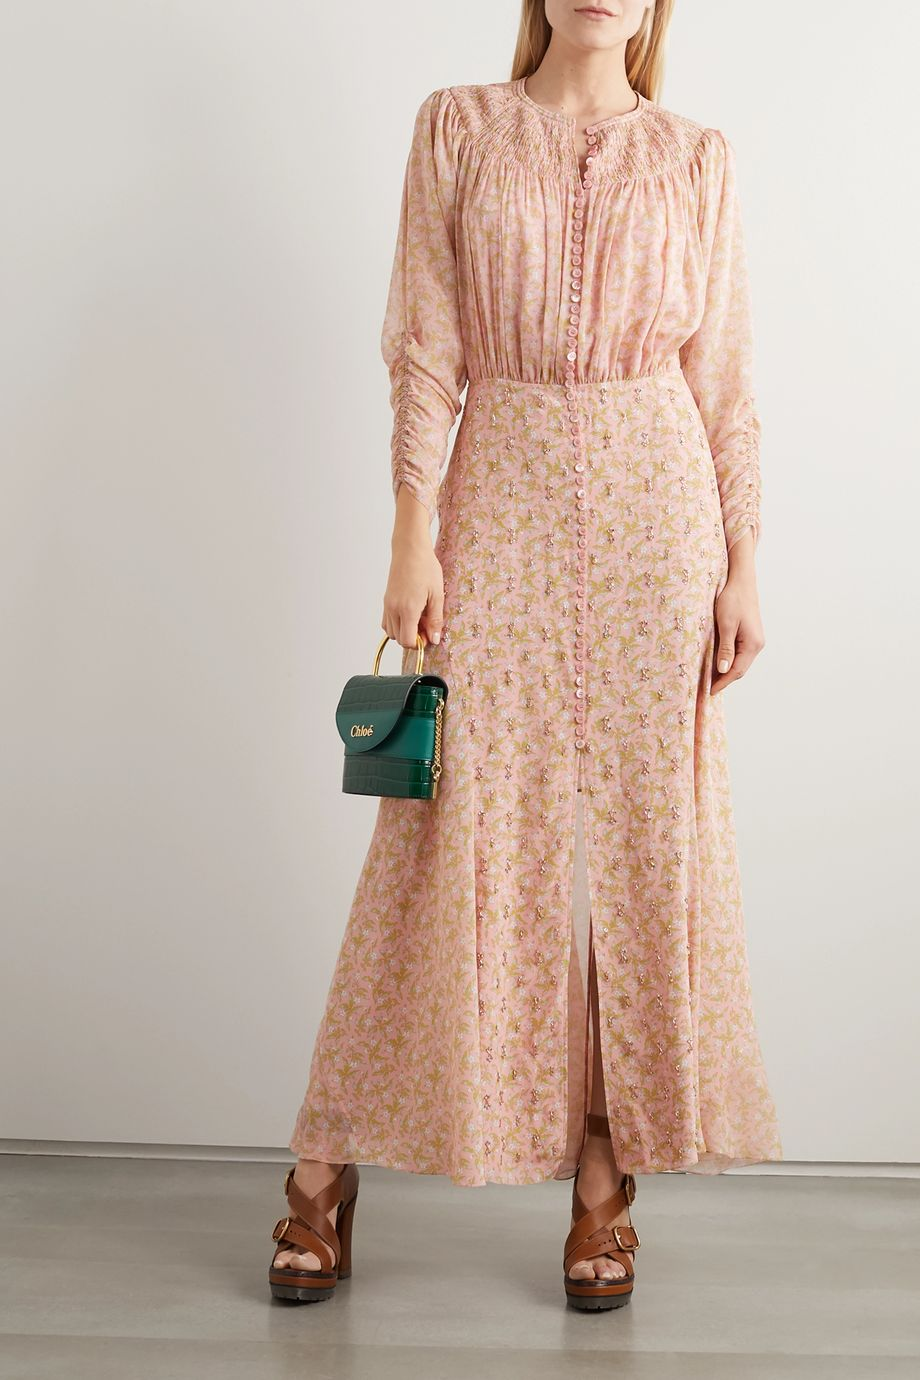 Chloé Embellished smocked floral-print silk crepe de chine maxi dress